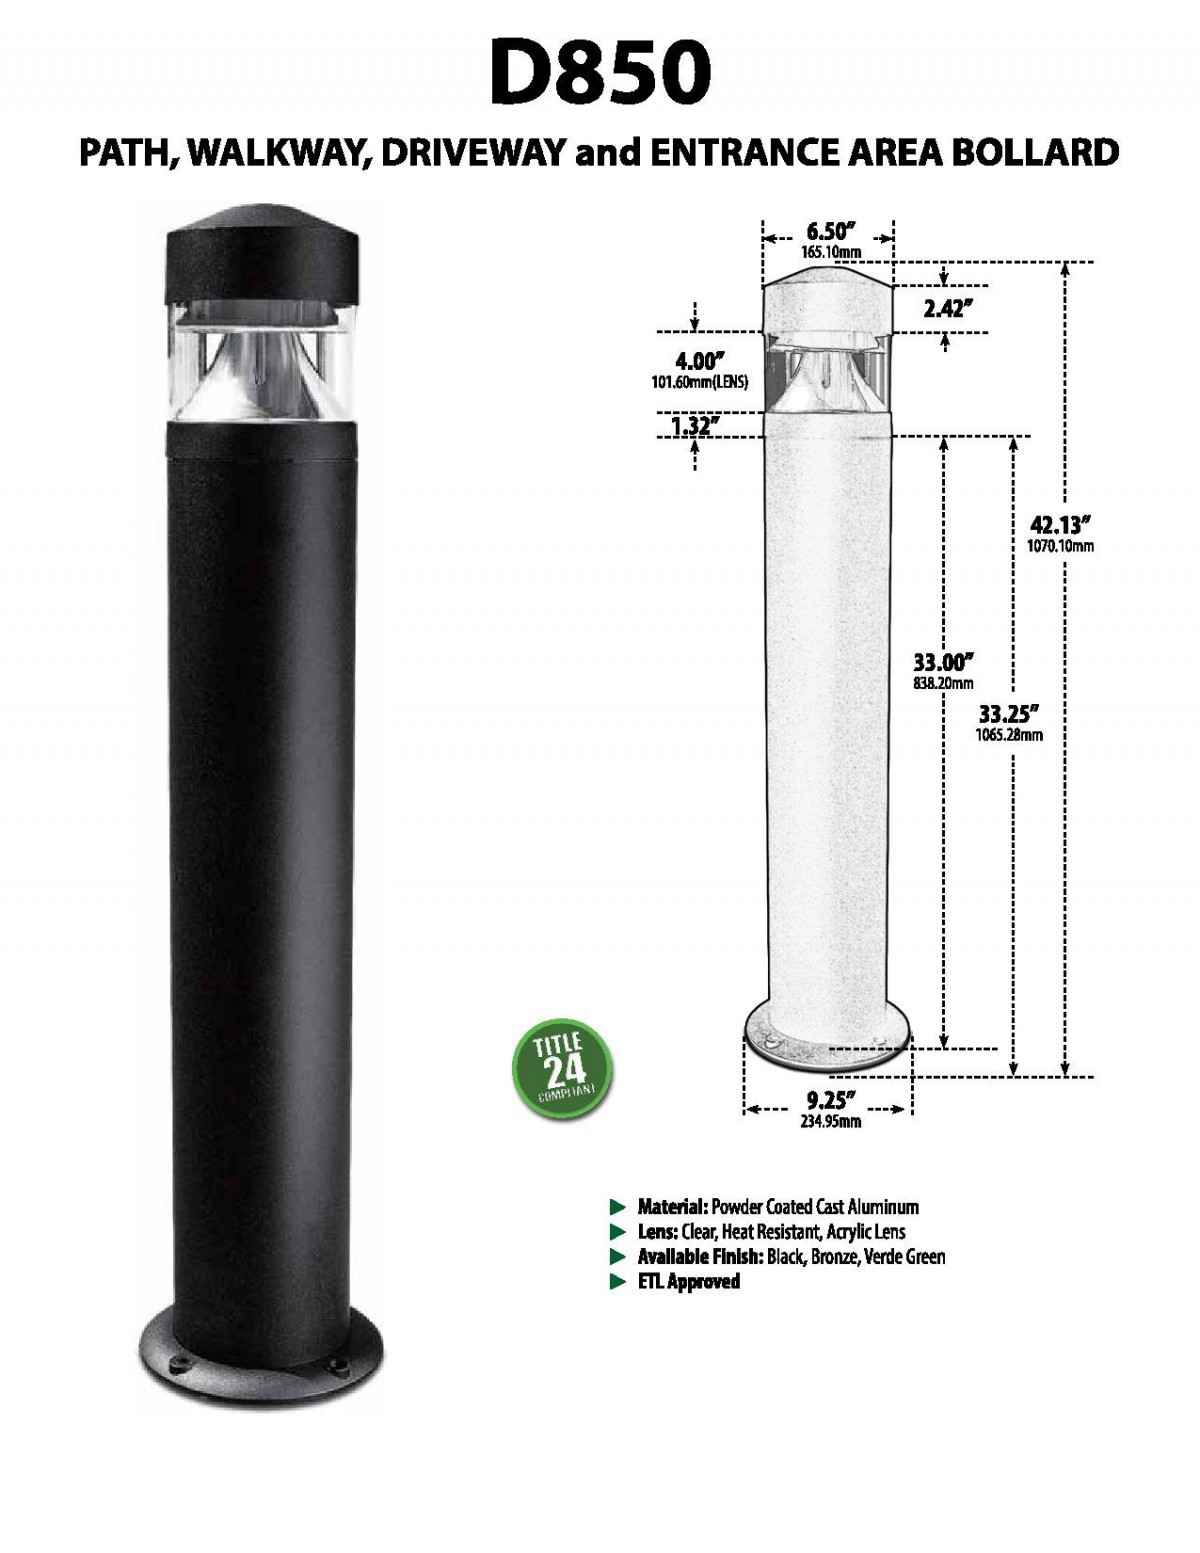 D 850 Heavy Duty Cast Aluminum Bollard Light Illuminator